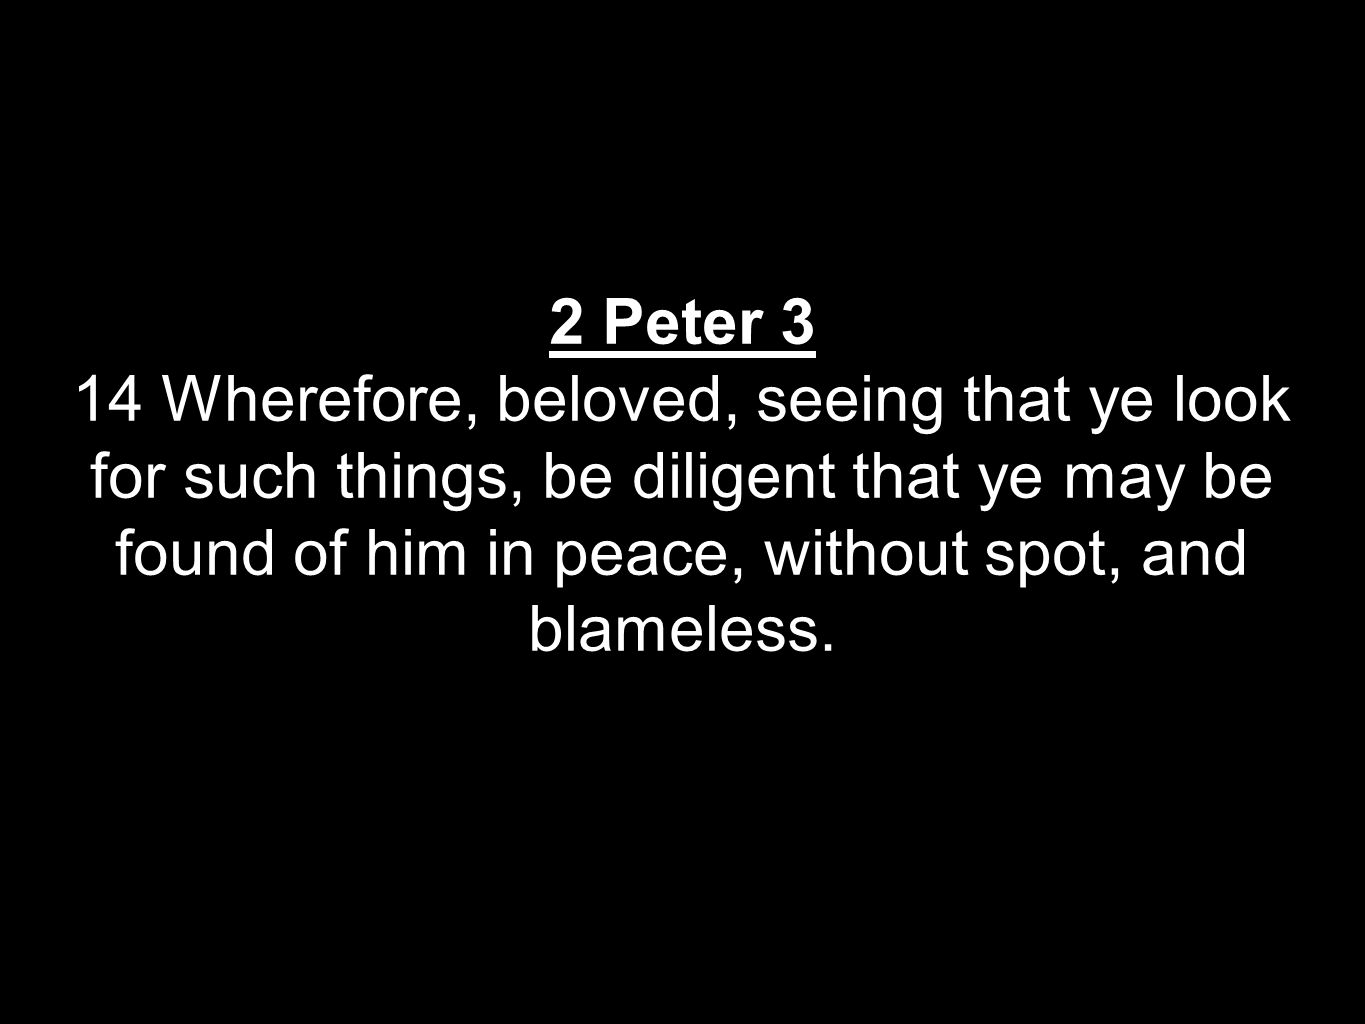 2 Peter 3 14 Wherefore, beloved, seeing that ye look for such things, be diligent that ye may be found of him in peace, without spot, and blameless.